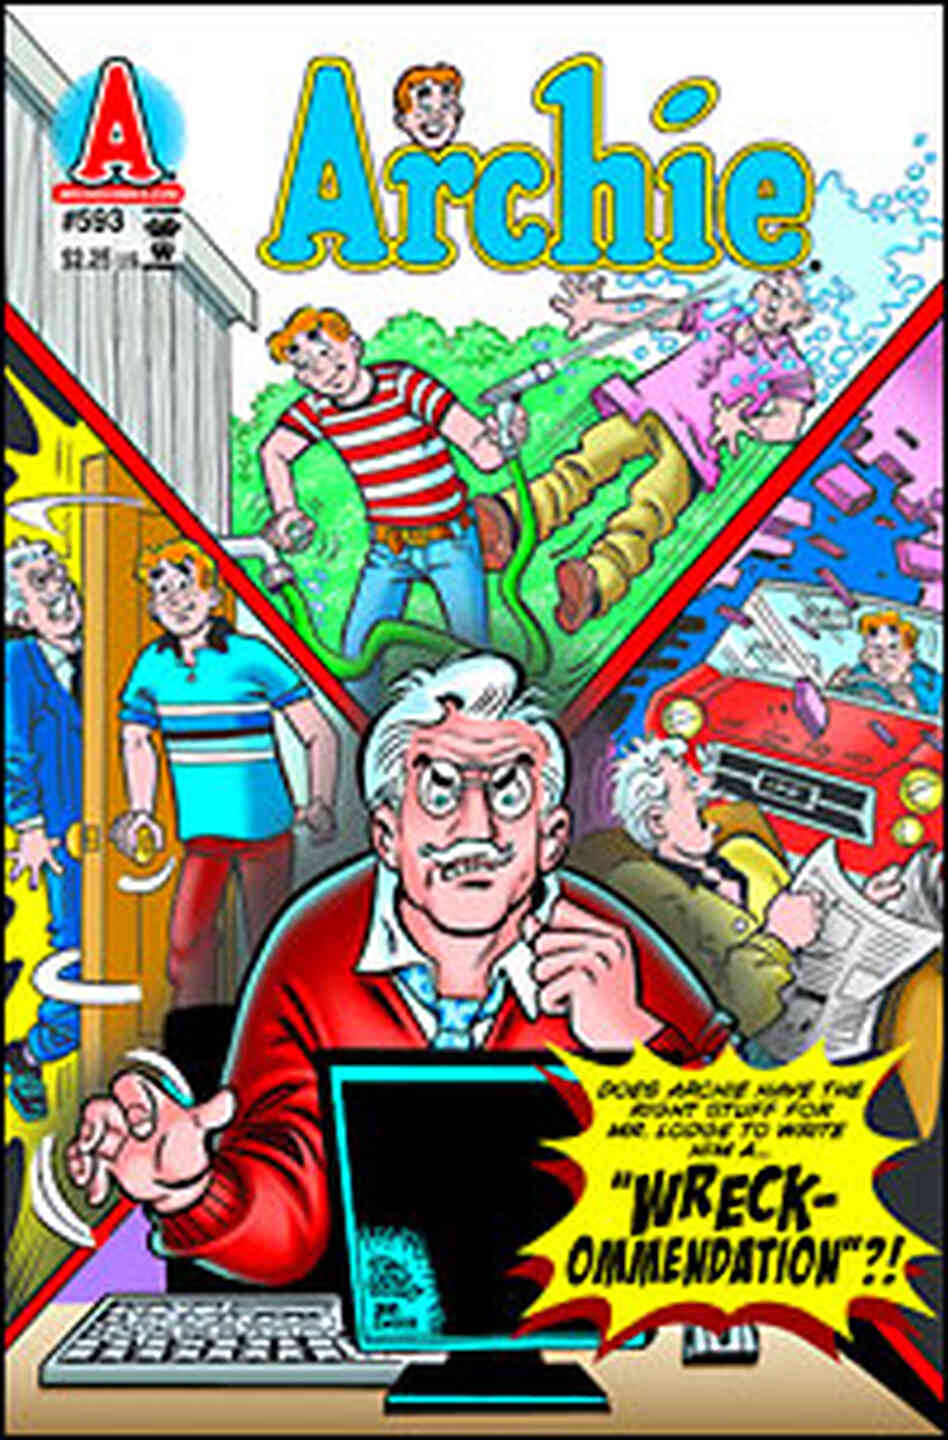 The cover of an Archie comic book